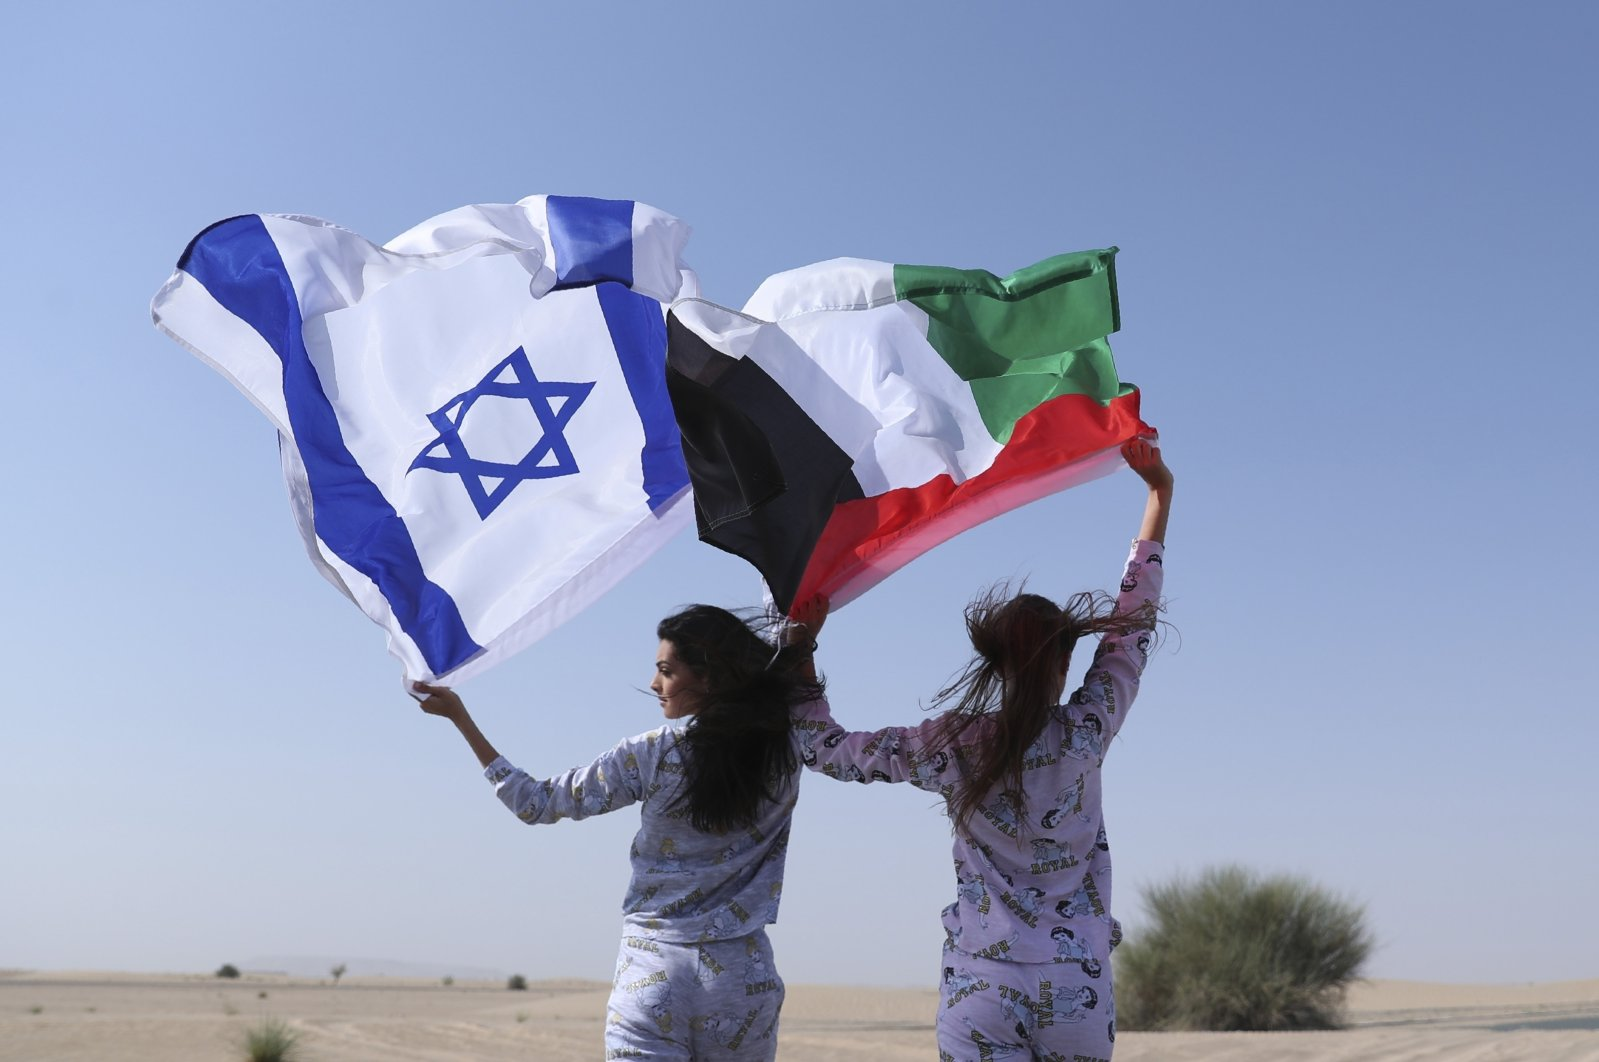 Israeli model May Tager (L) holds Israel's blue-and-white flag bearing the Star of David while next to her Anastasia Bandarenka, a Dubai-based model originally from Russia, waves the Emirati flag, during a photoshoot of Israeli fashion brand Fix, in Dubai, United Arab Emirates, Sept. 8, 2020. (AP Photo)